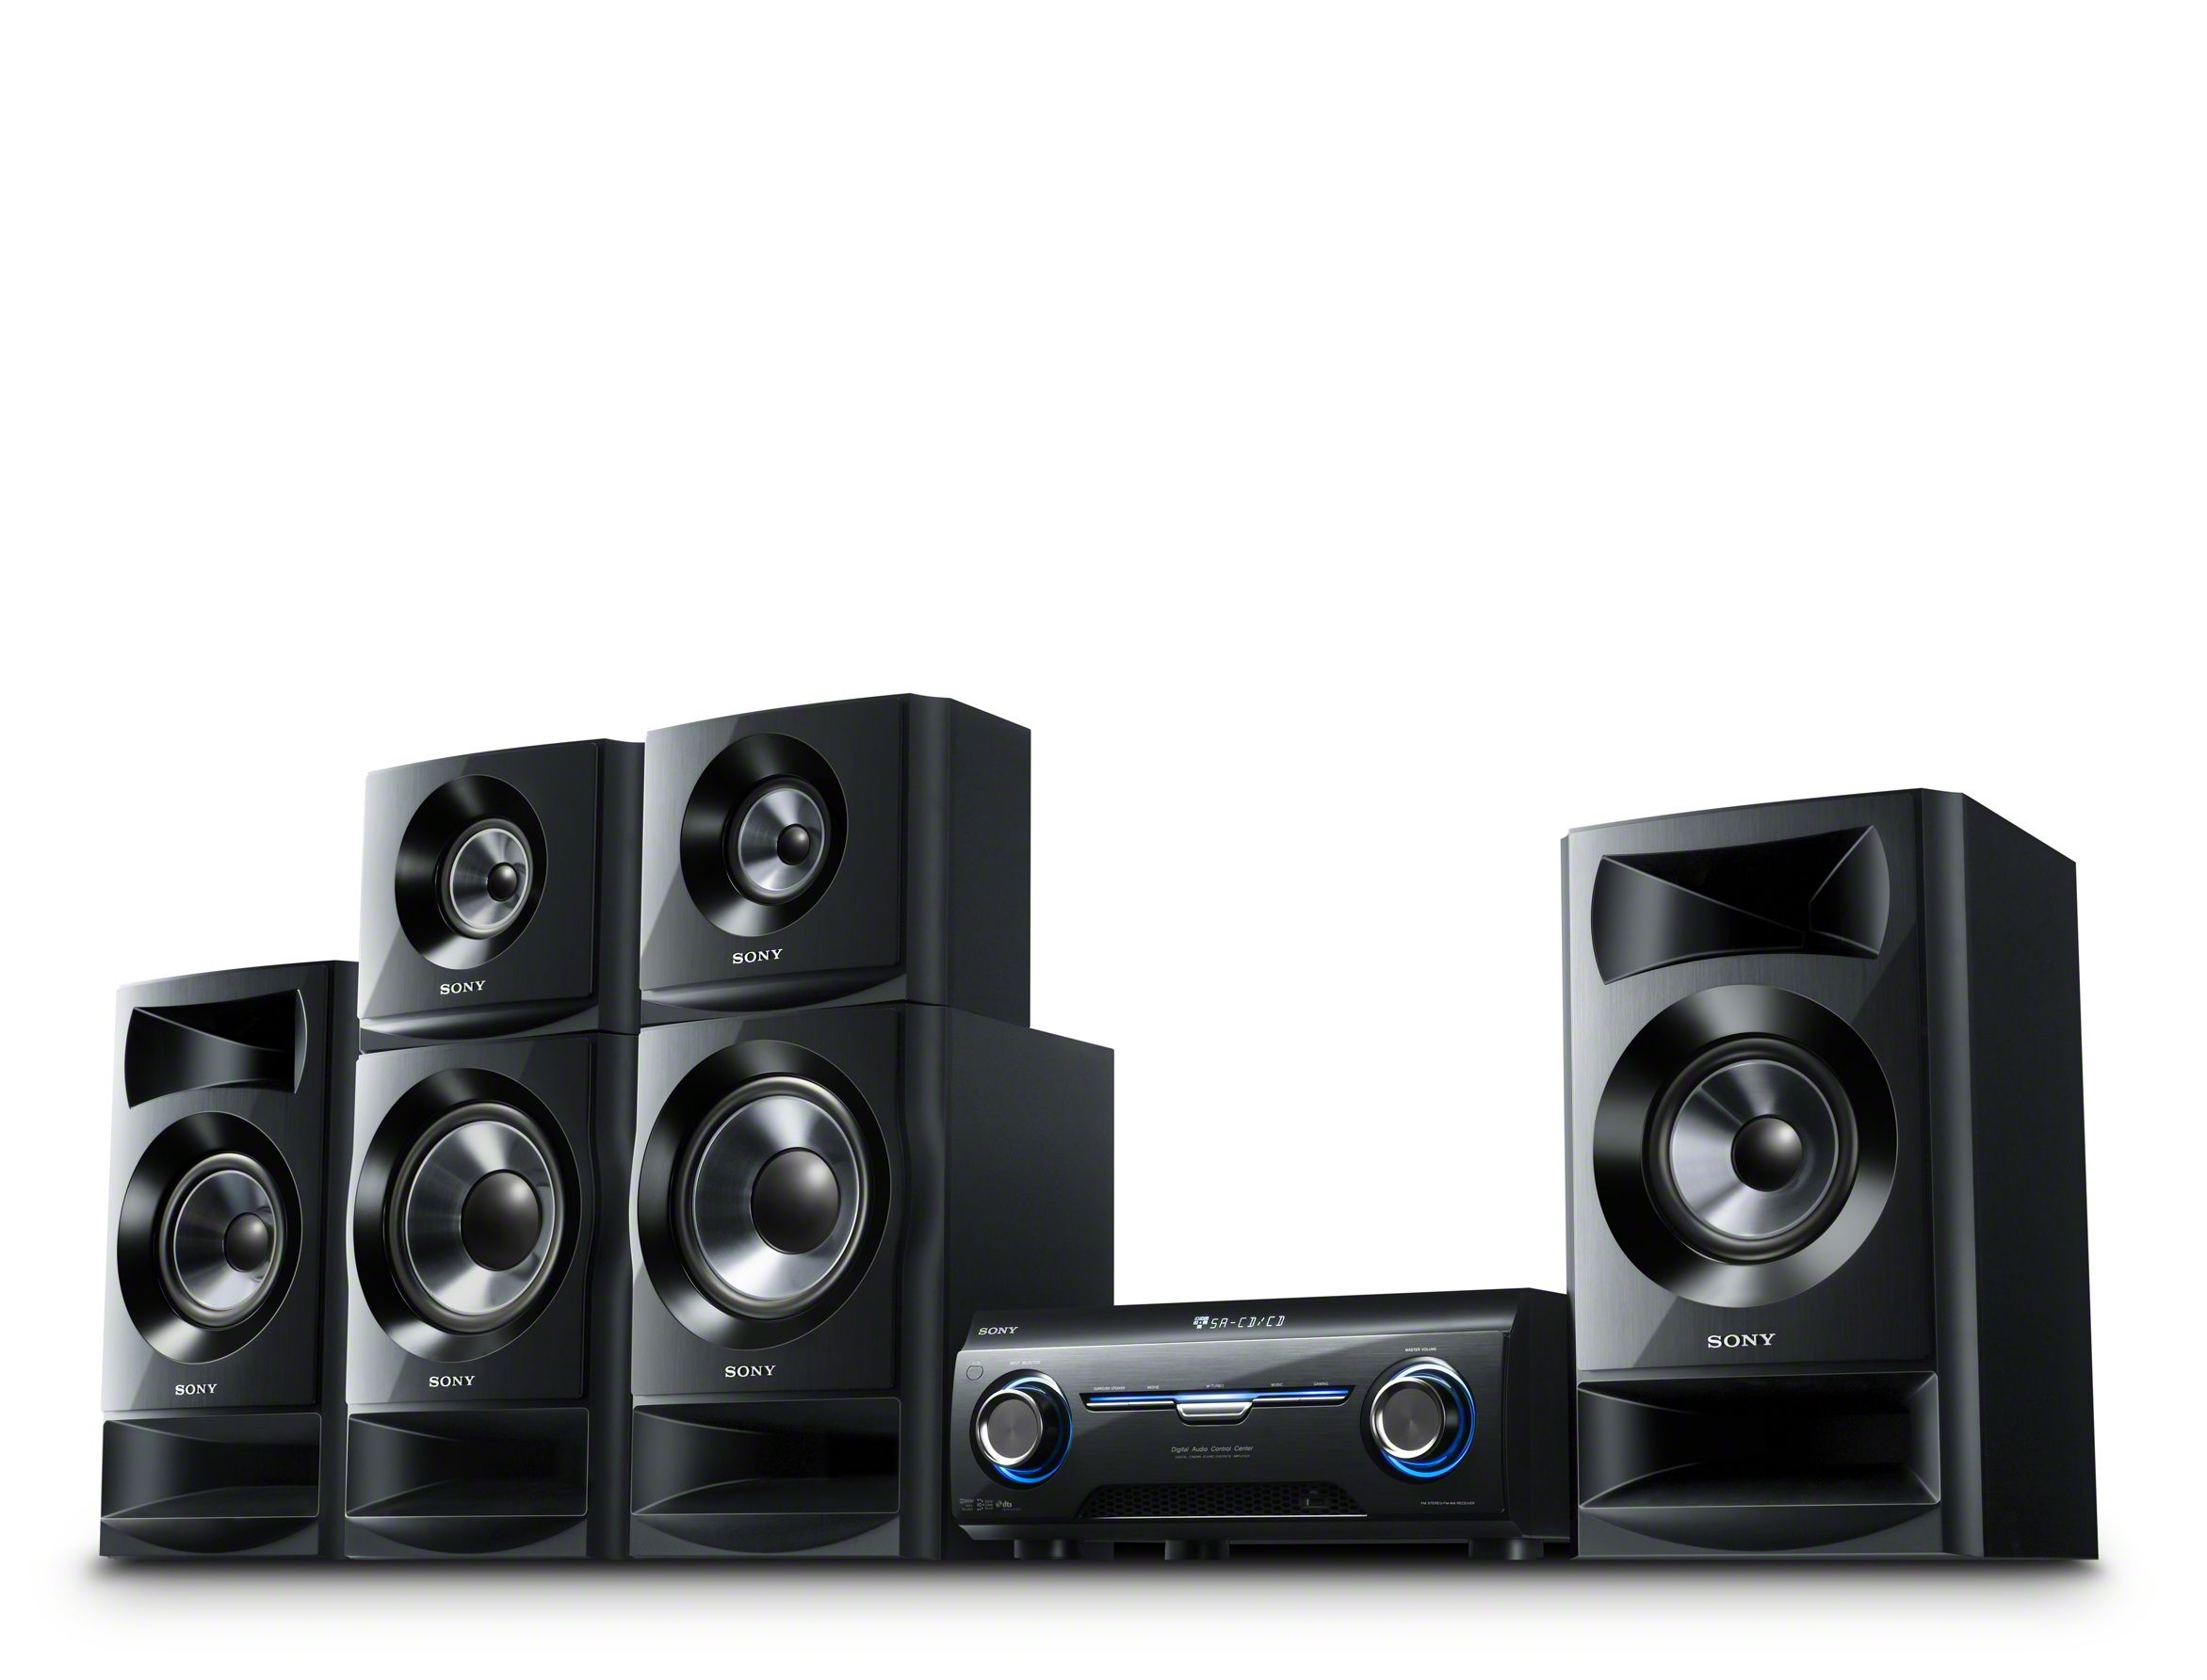 sony home sound system. sony home audio system 2012 sound m